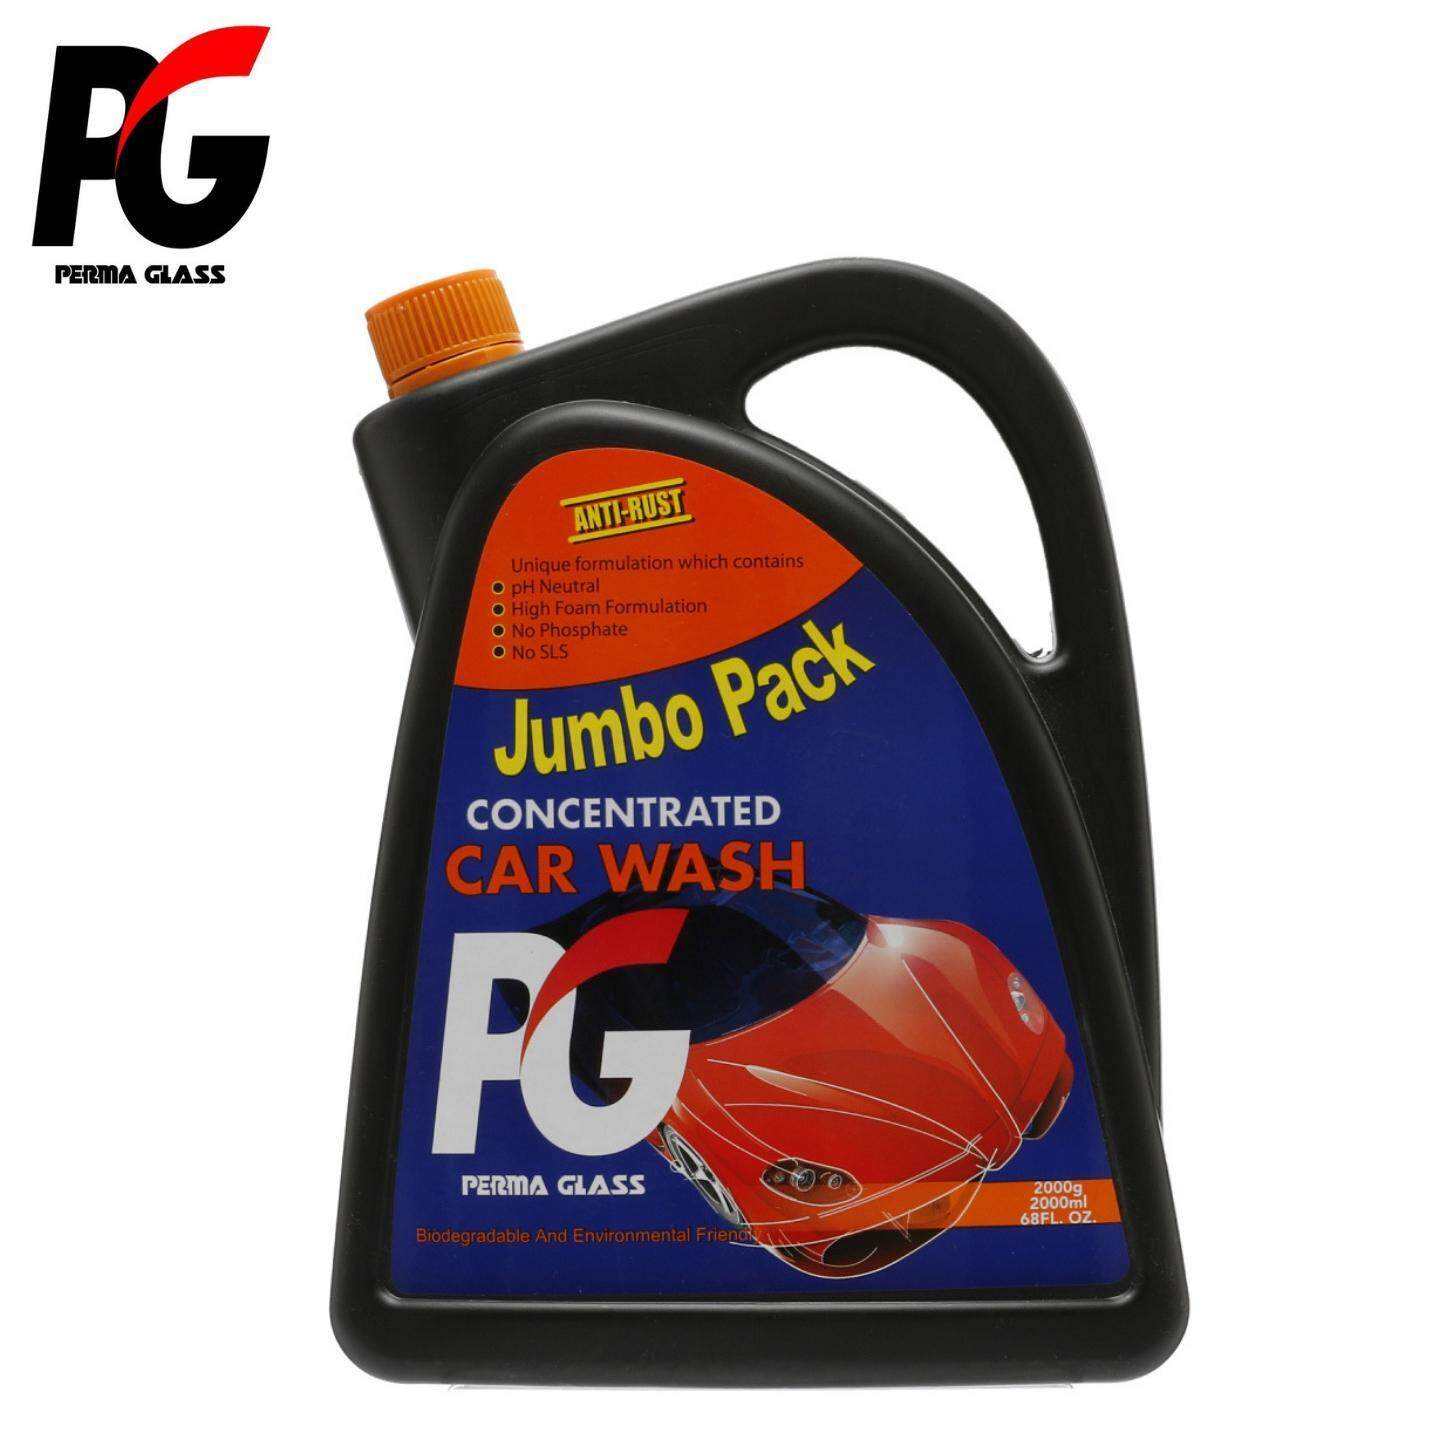 PG CONCENTRATED CAR WASH (2000ML) - CAR CARE EXTERIOR